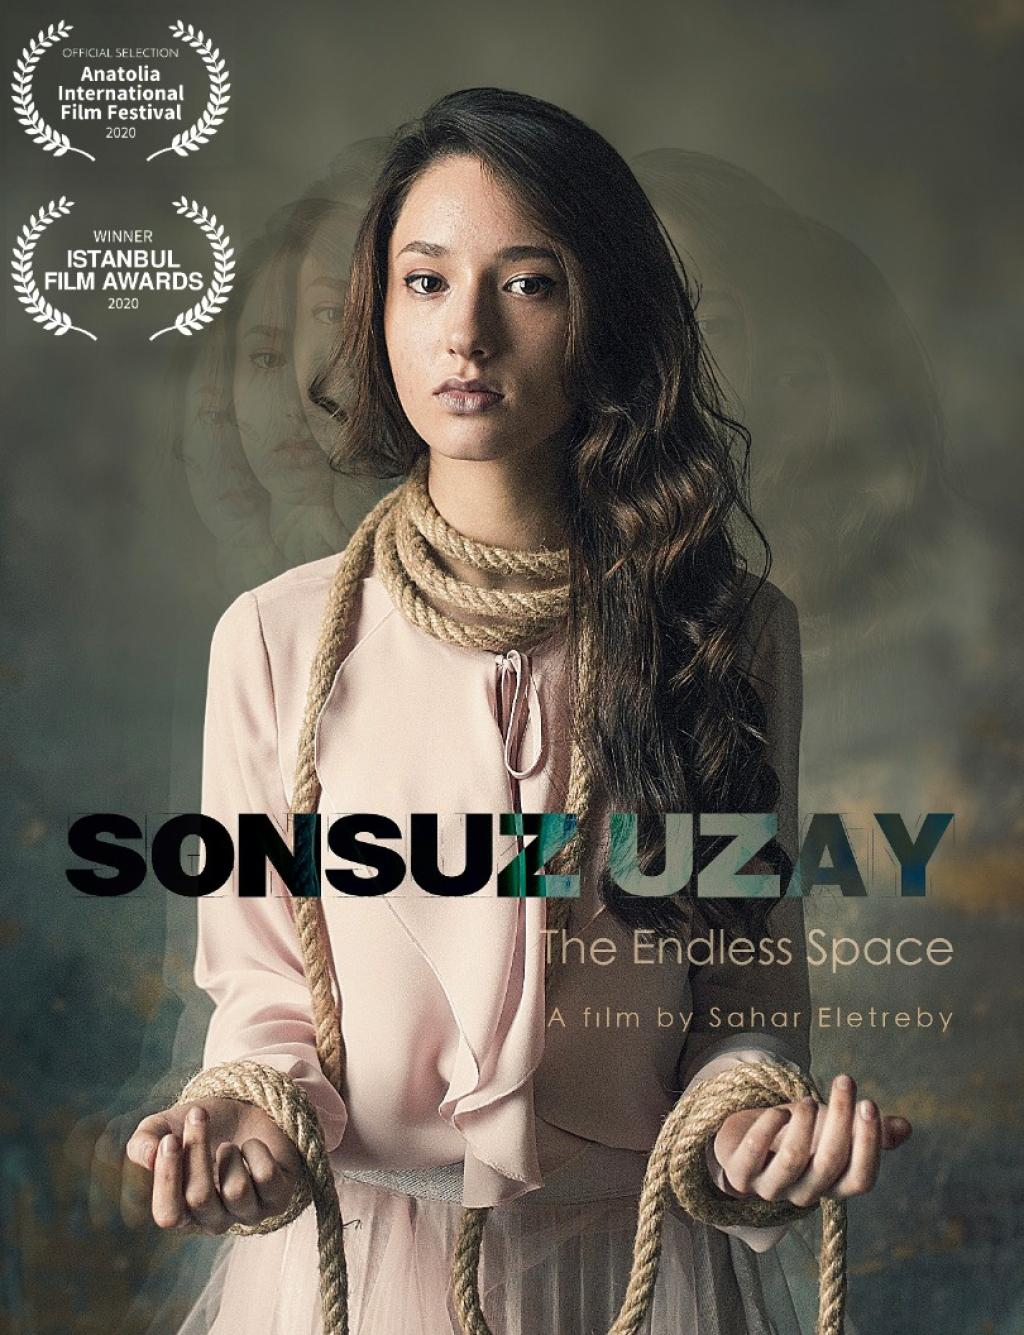 Sonsuz Uzay (The Endless Space) is one of Eve Production's works which is an award winner in Turkey.